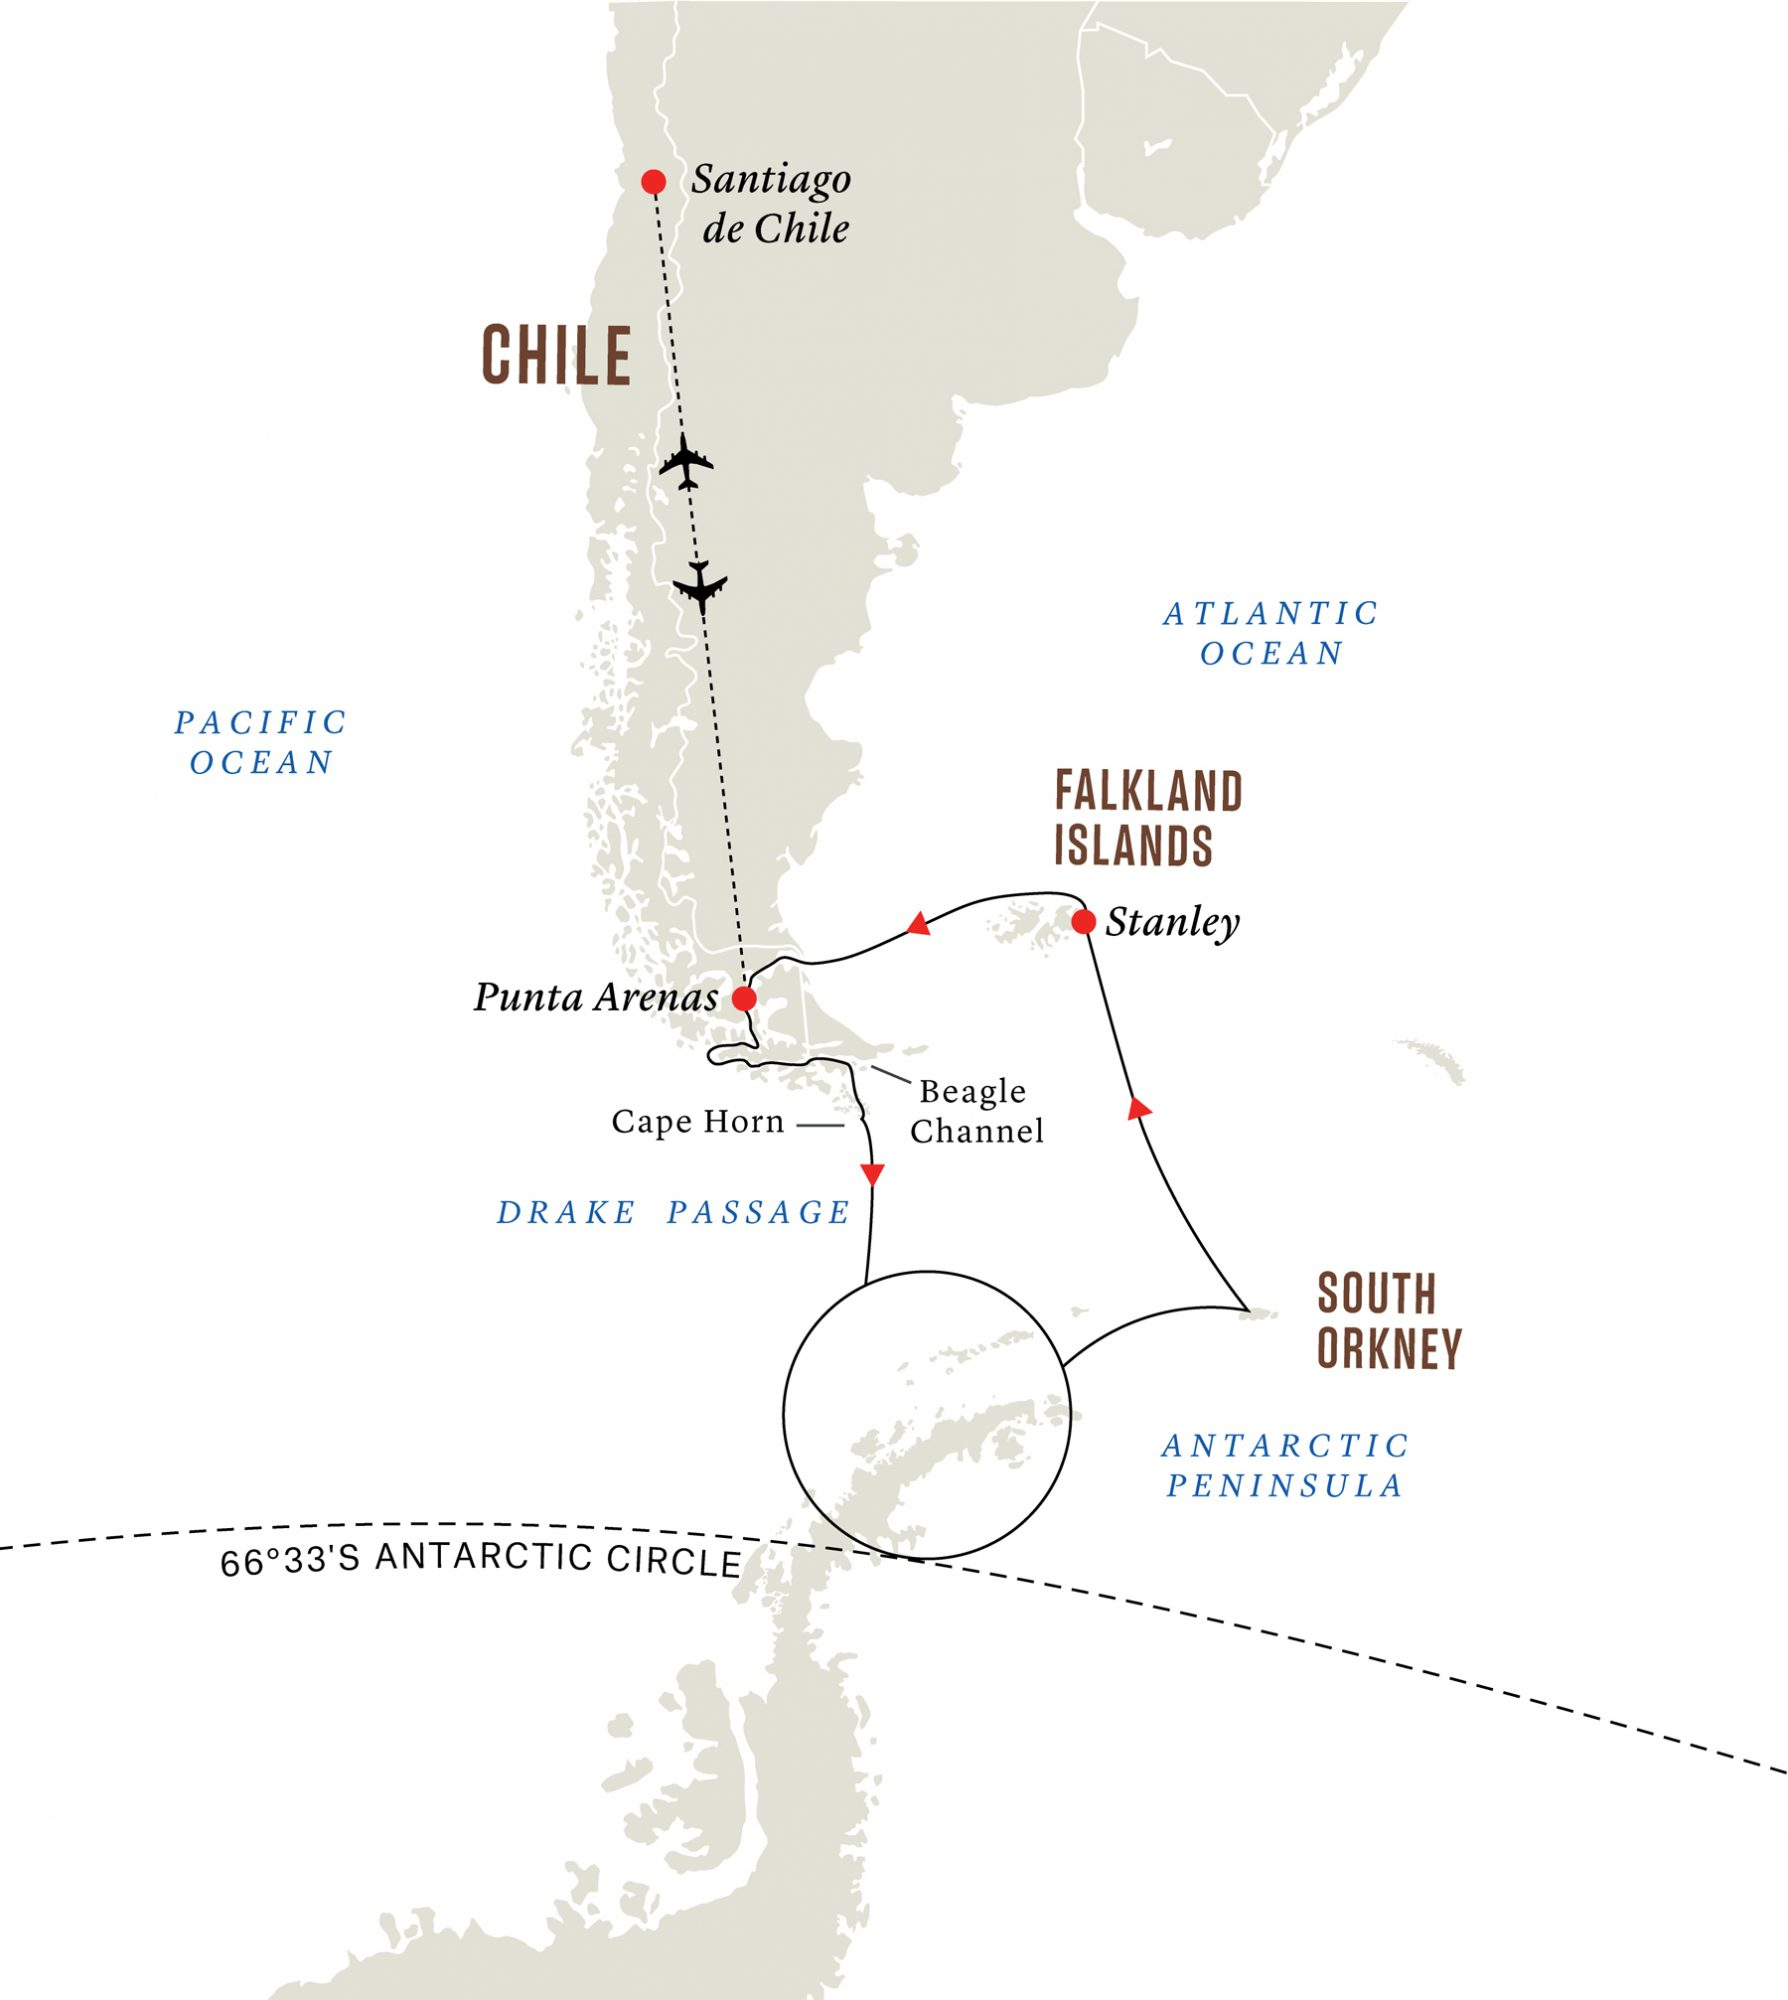 travel path for solar eclipse